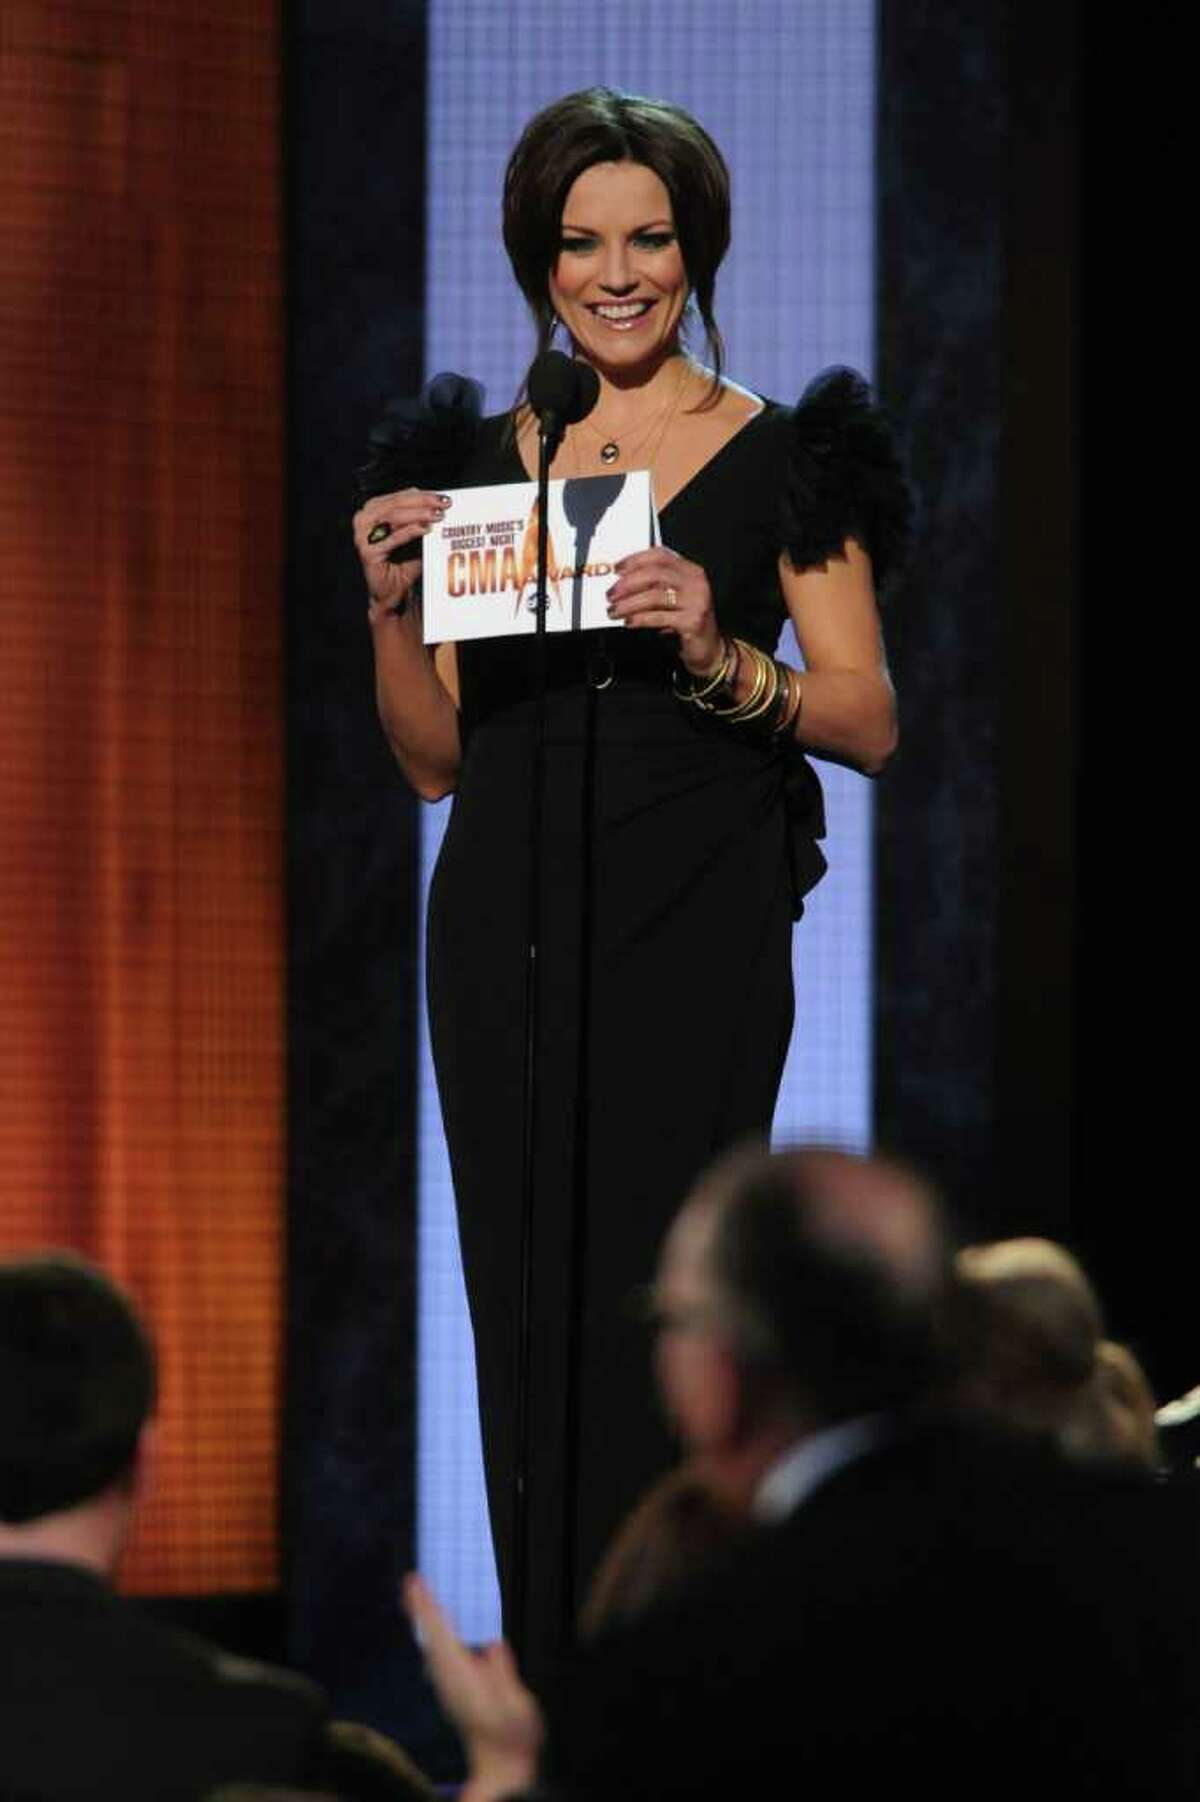 NASHVILLE, TN - NOVEMBER 10: Martina McBride presents award for Male Vocalist of the Year at the 44th Annual CMA Awards at the Bridgestone Arena on November 10, 2010 in Nashville, Tennessee. (Photo by Rick Diamond/Getty Images) *** Local Caption *** Martina McBride